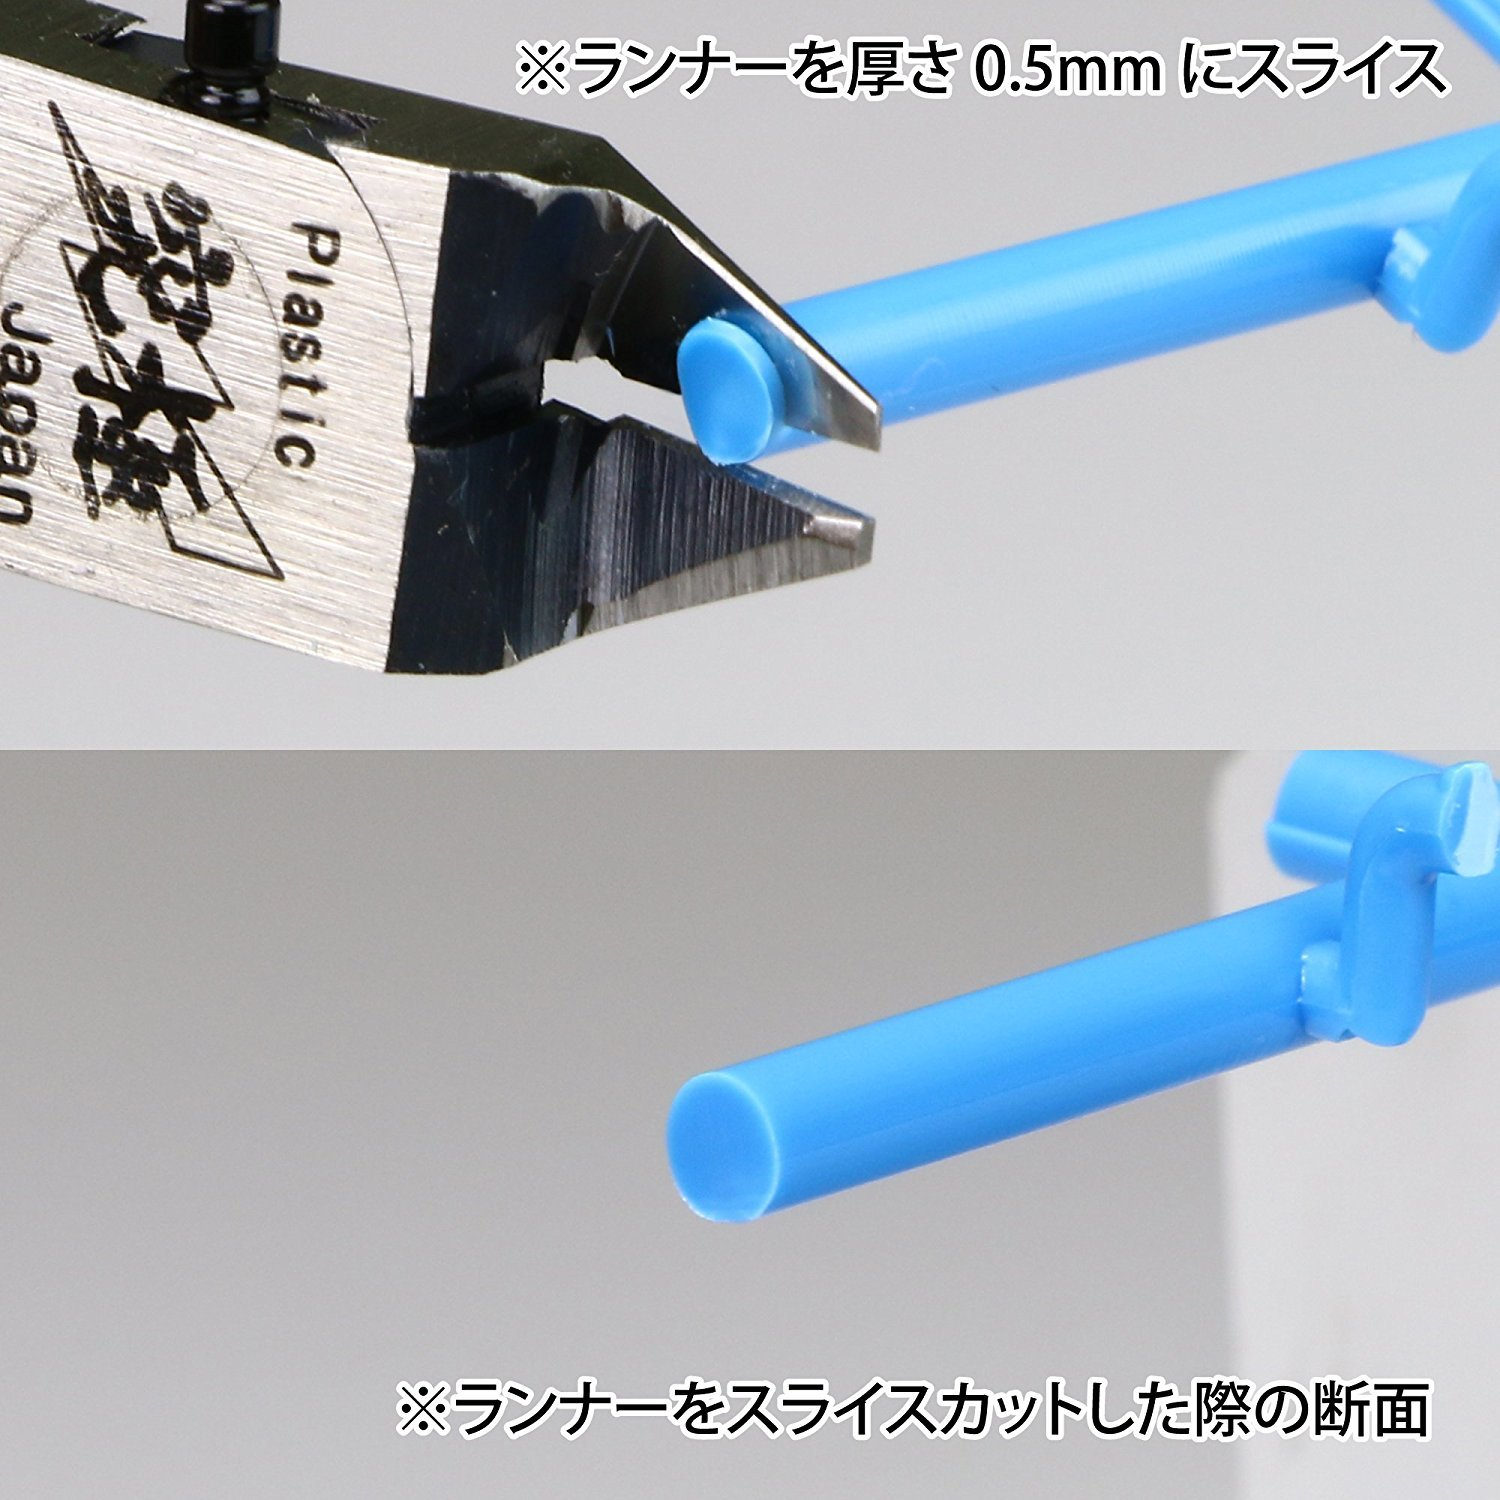 God Hand Ultimate Nipper 5.0 Plastic model Tools for GH-SPN-120 by God Hand (Image #3)